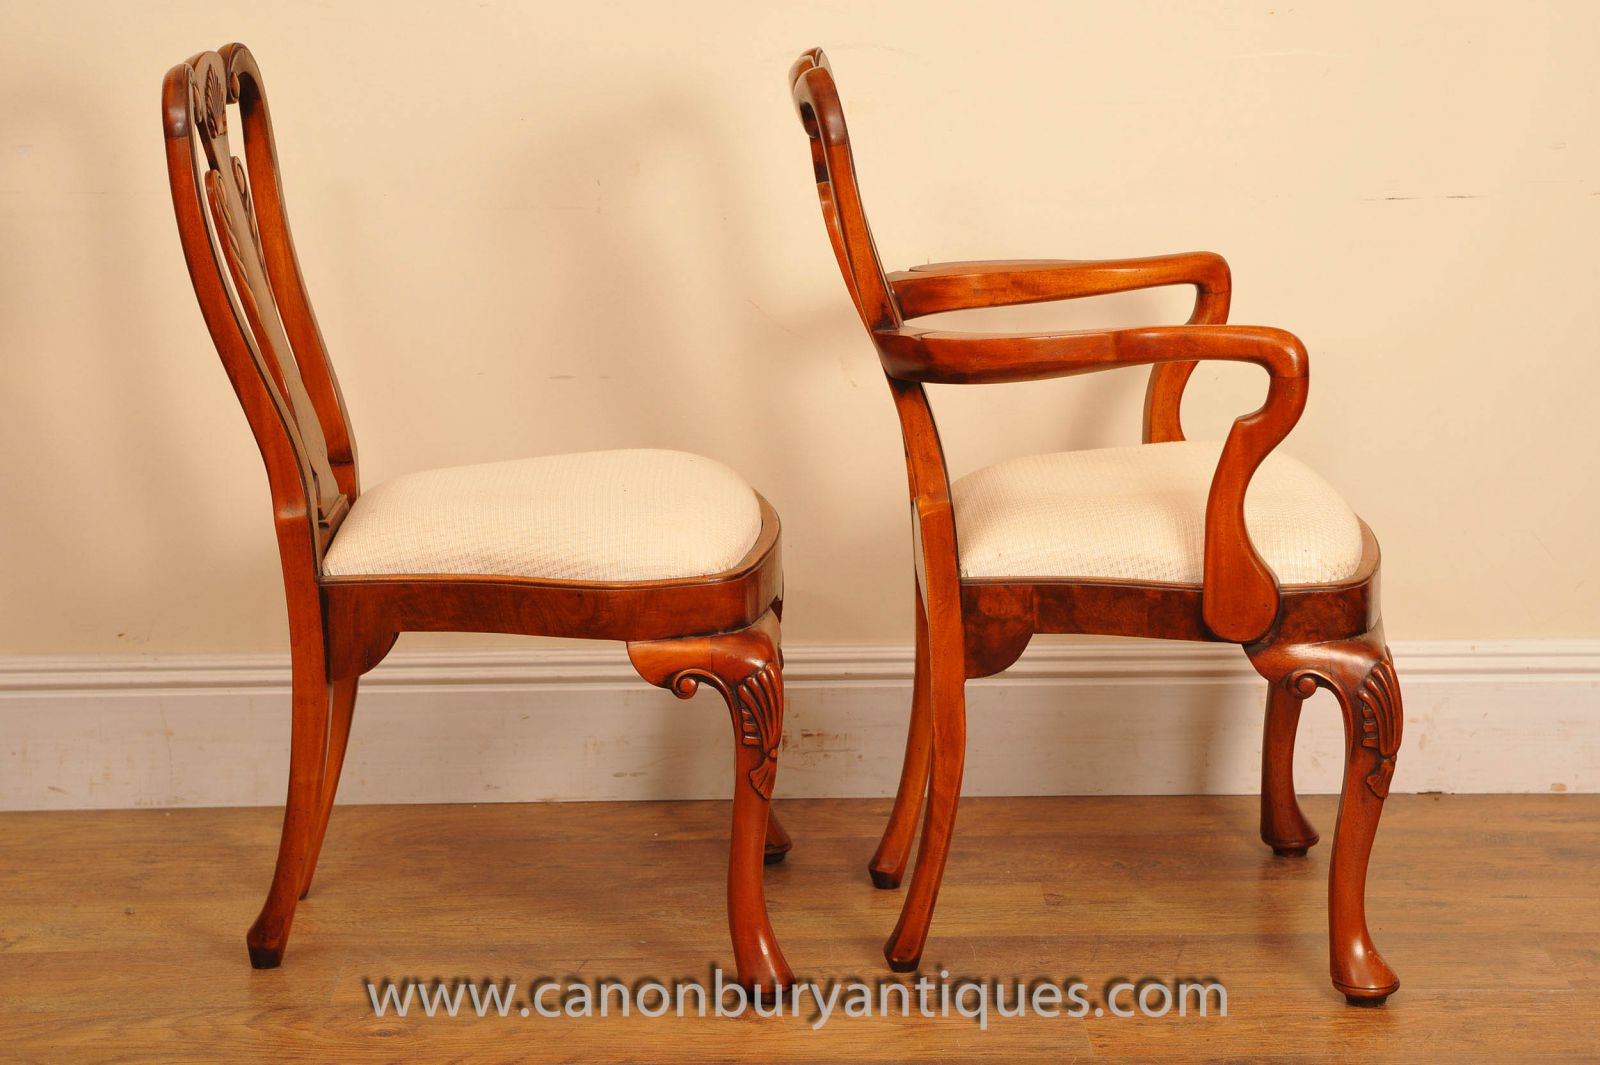 Antique Table and Chairs www_canonburyantiques_com (14)-2